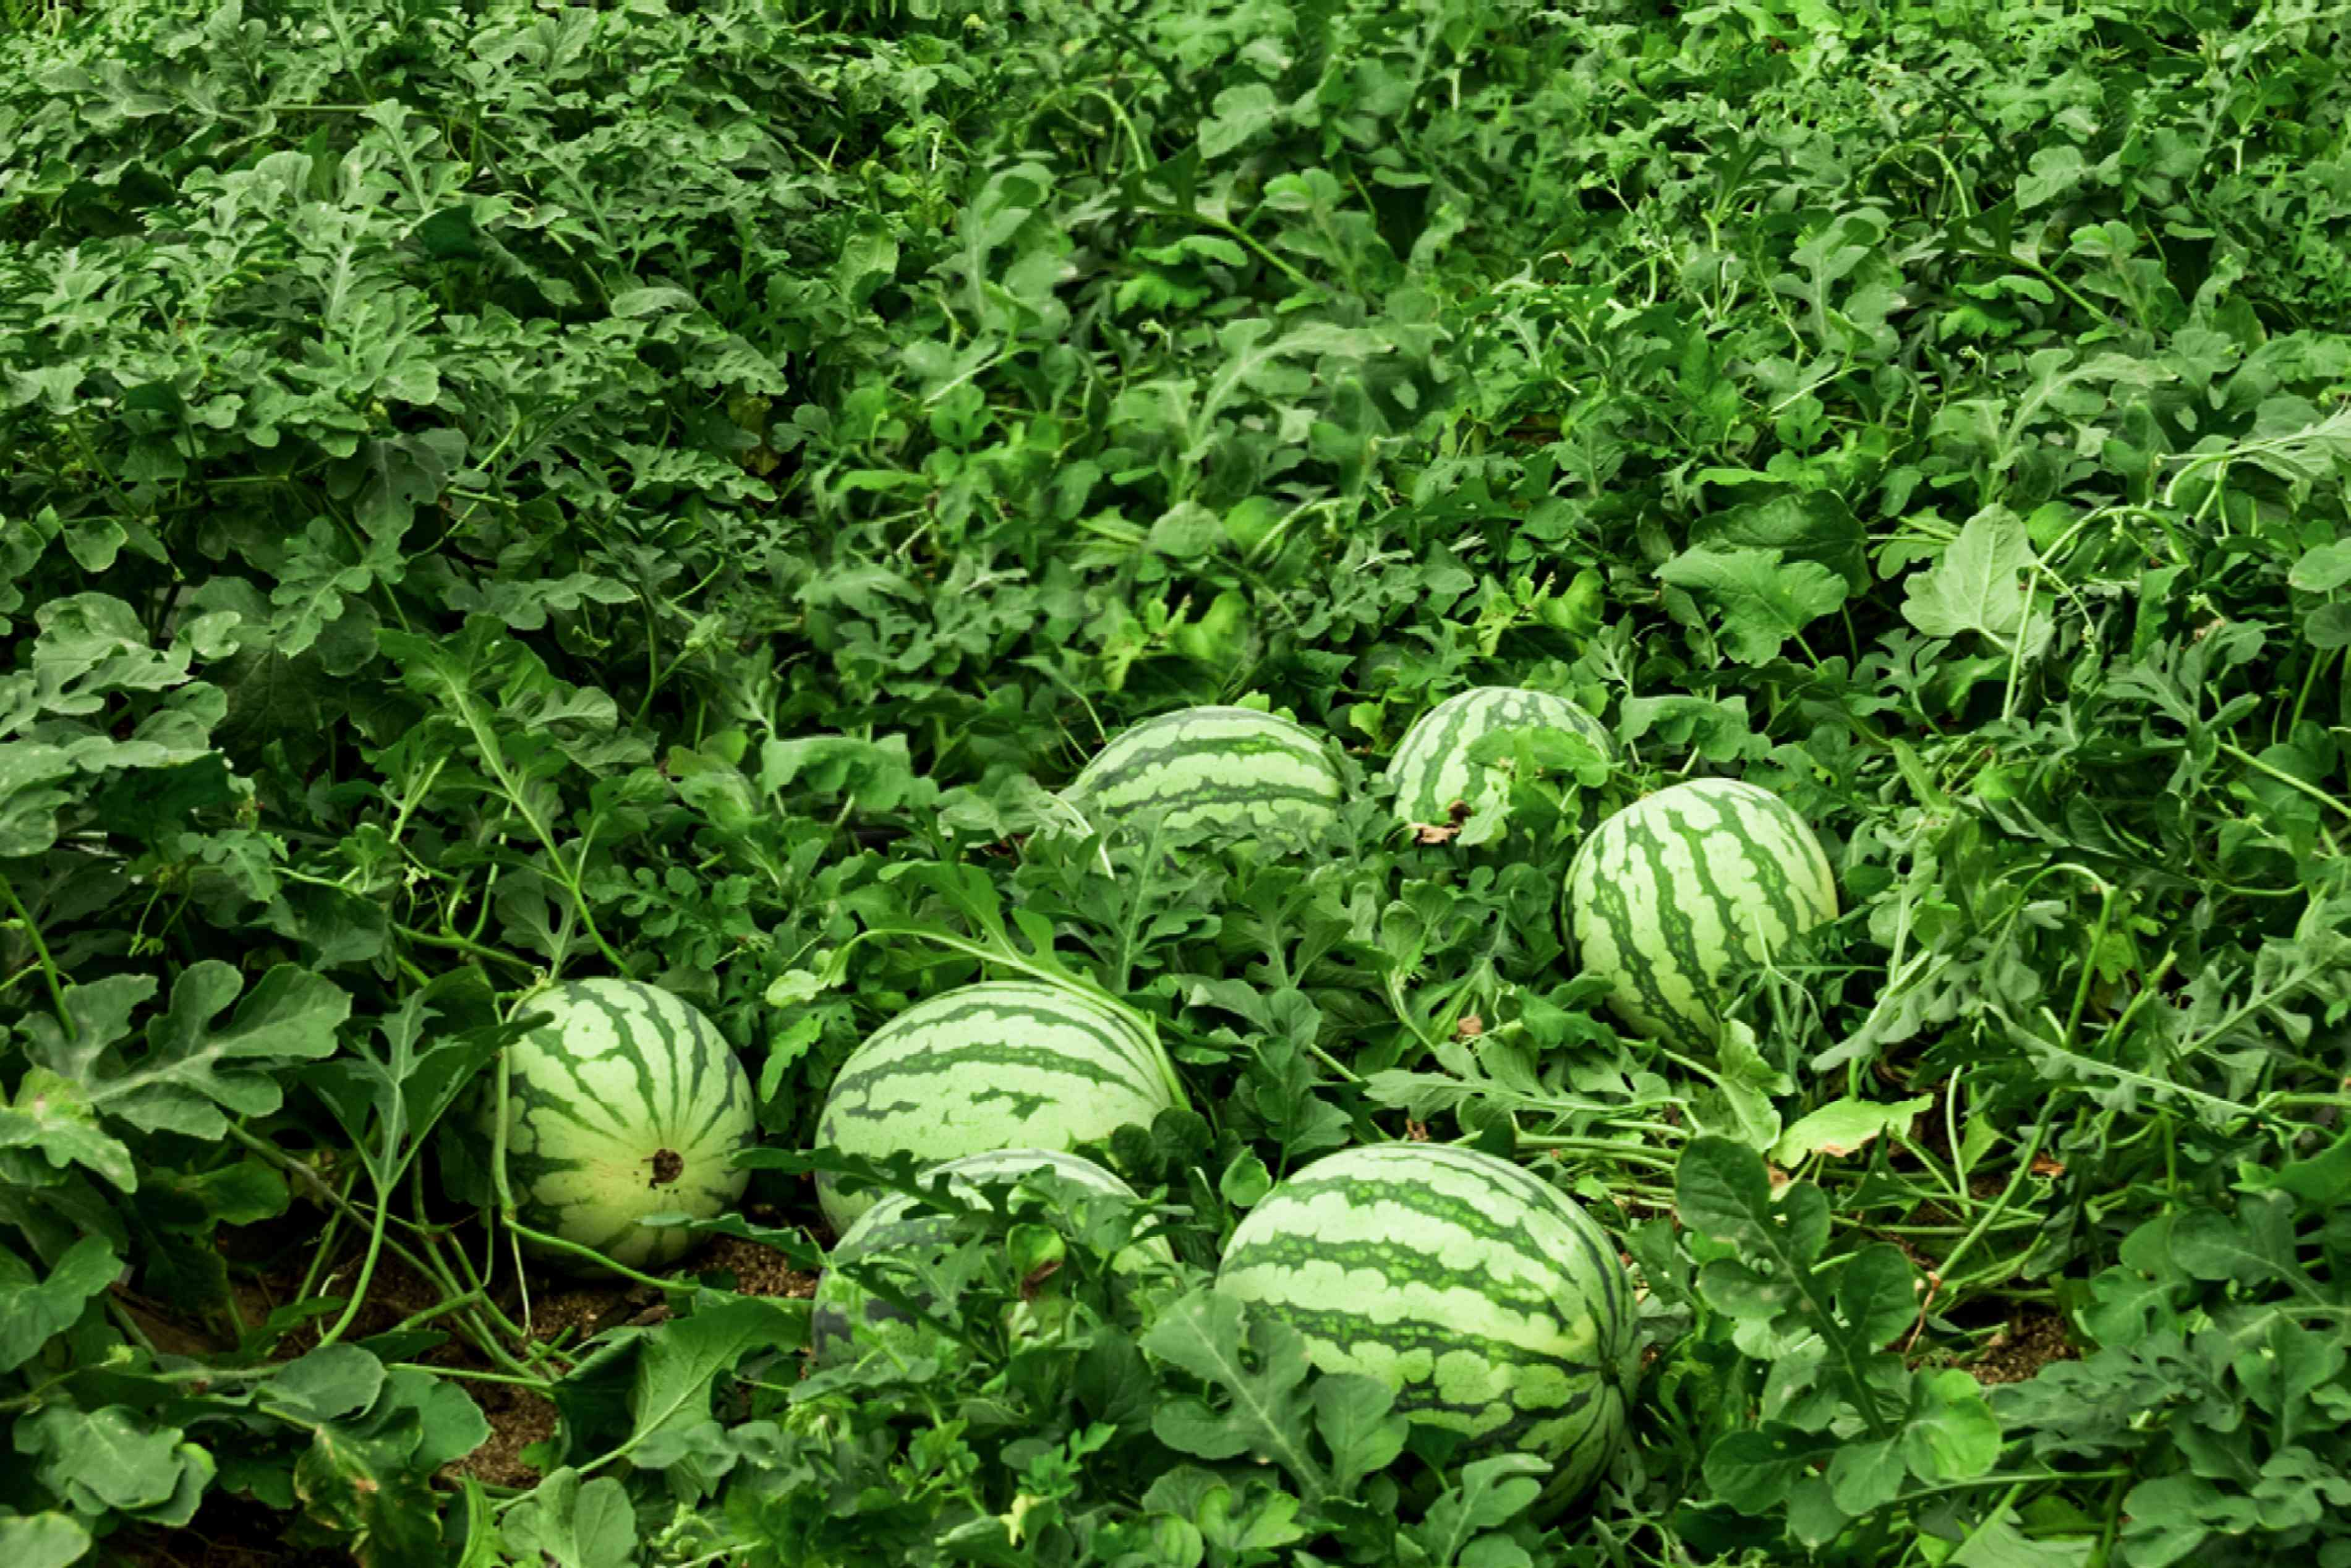 Yellow watermelons in middle of vine patch and leaves